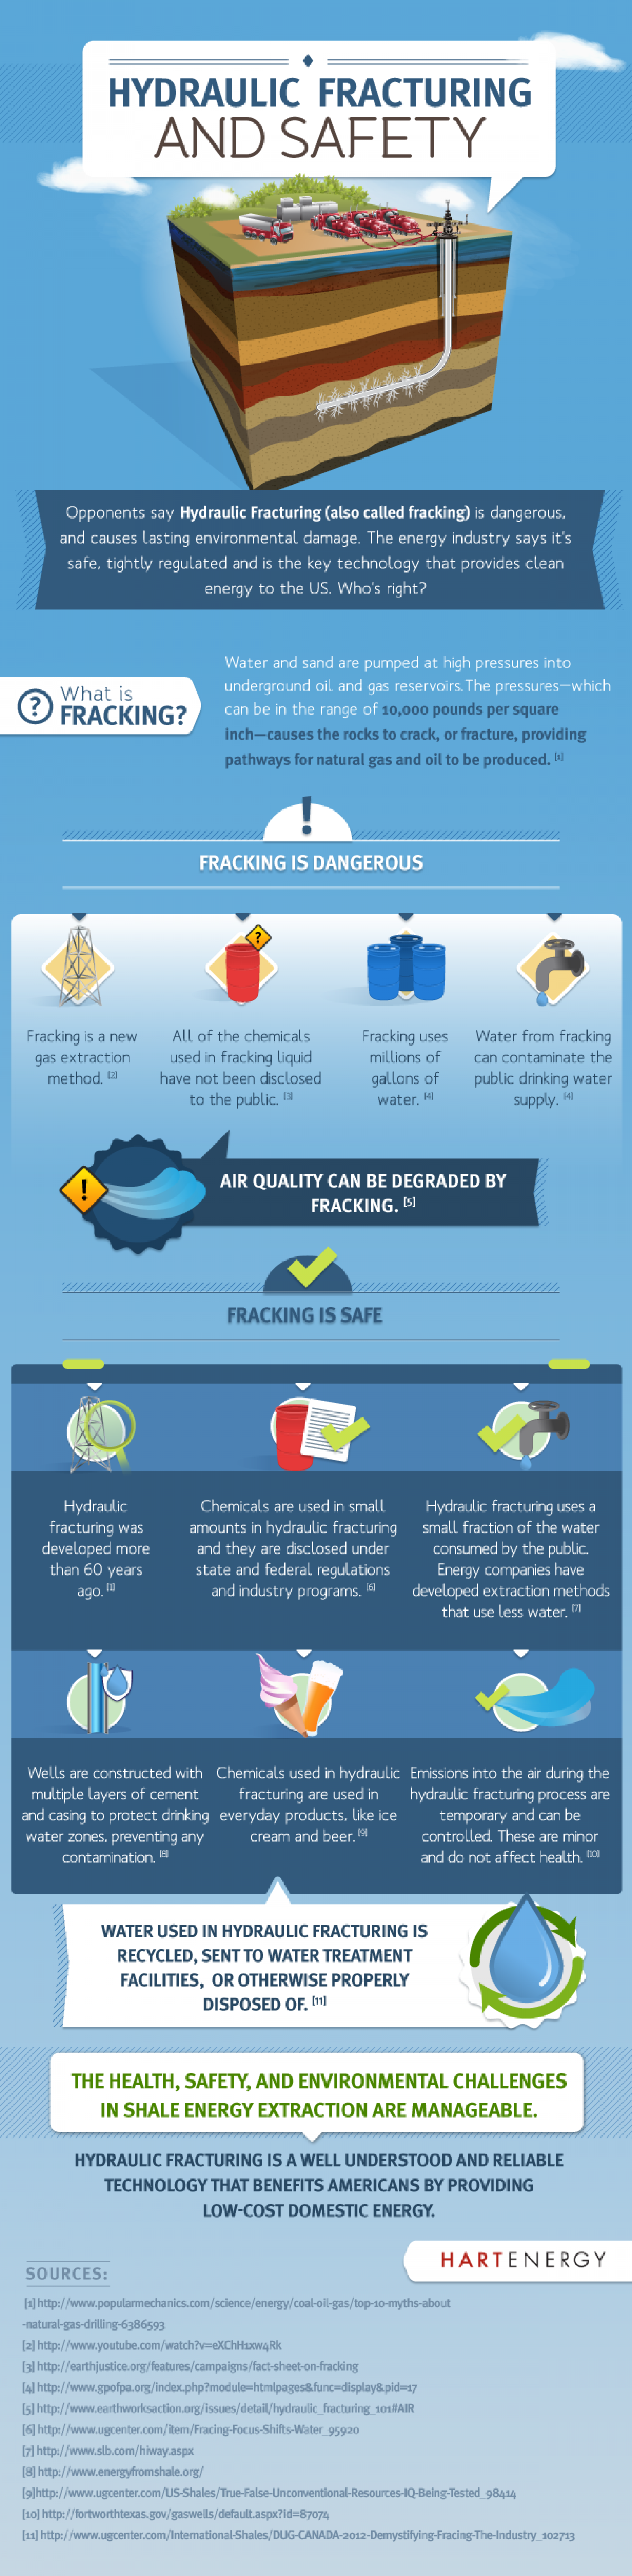 Hydraulic Fracturing and Safety Infographic